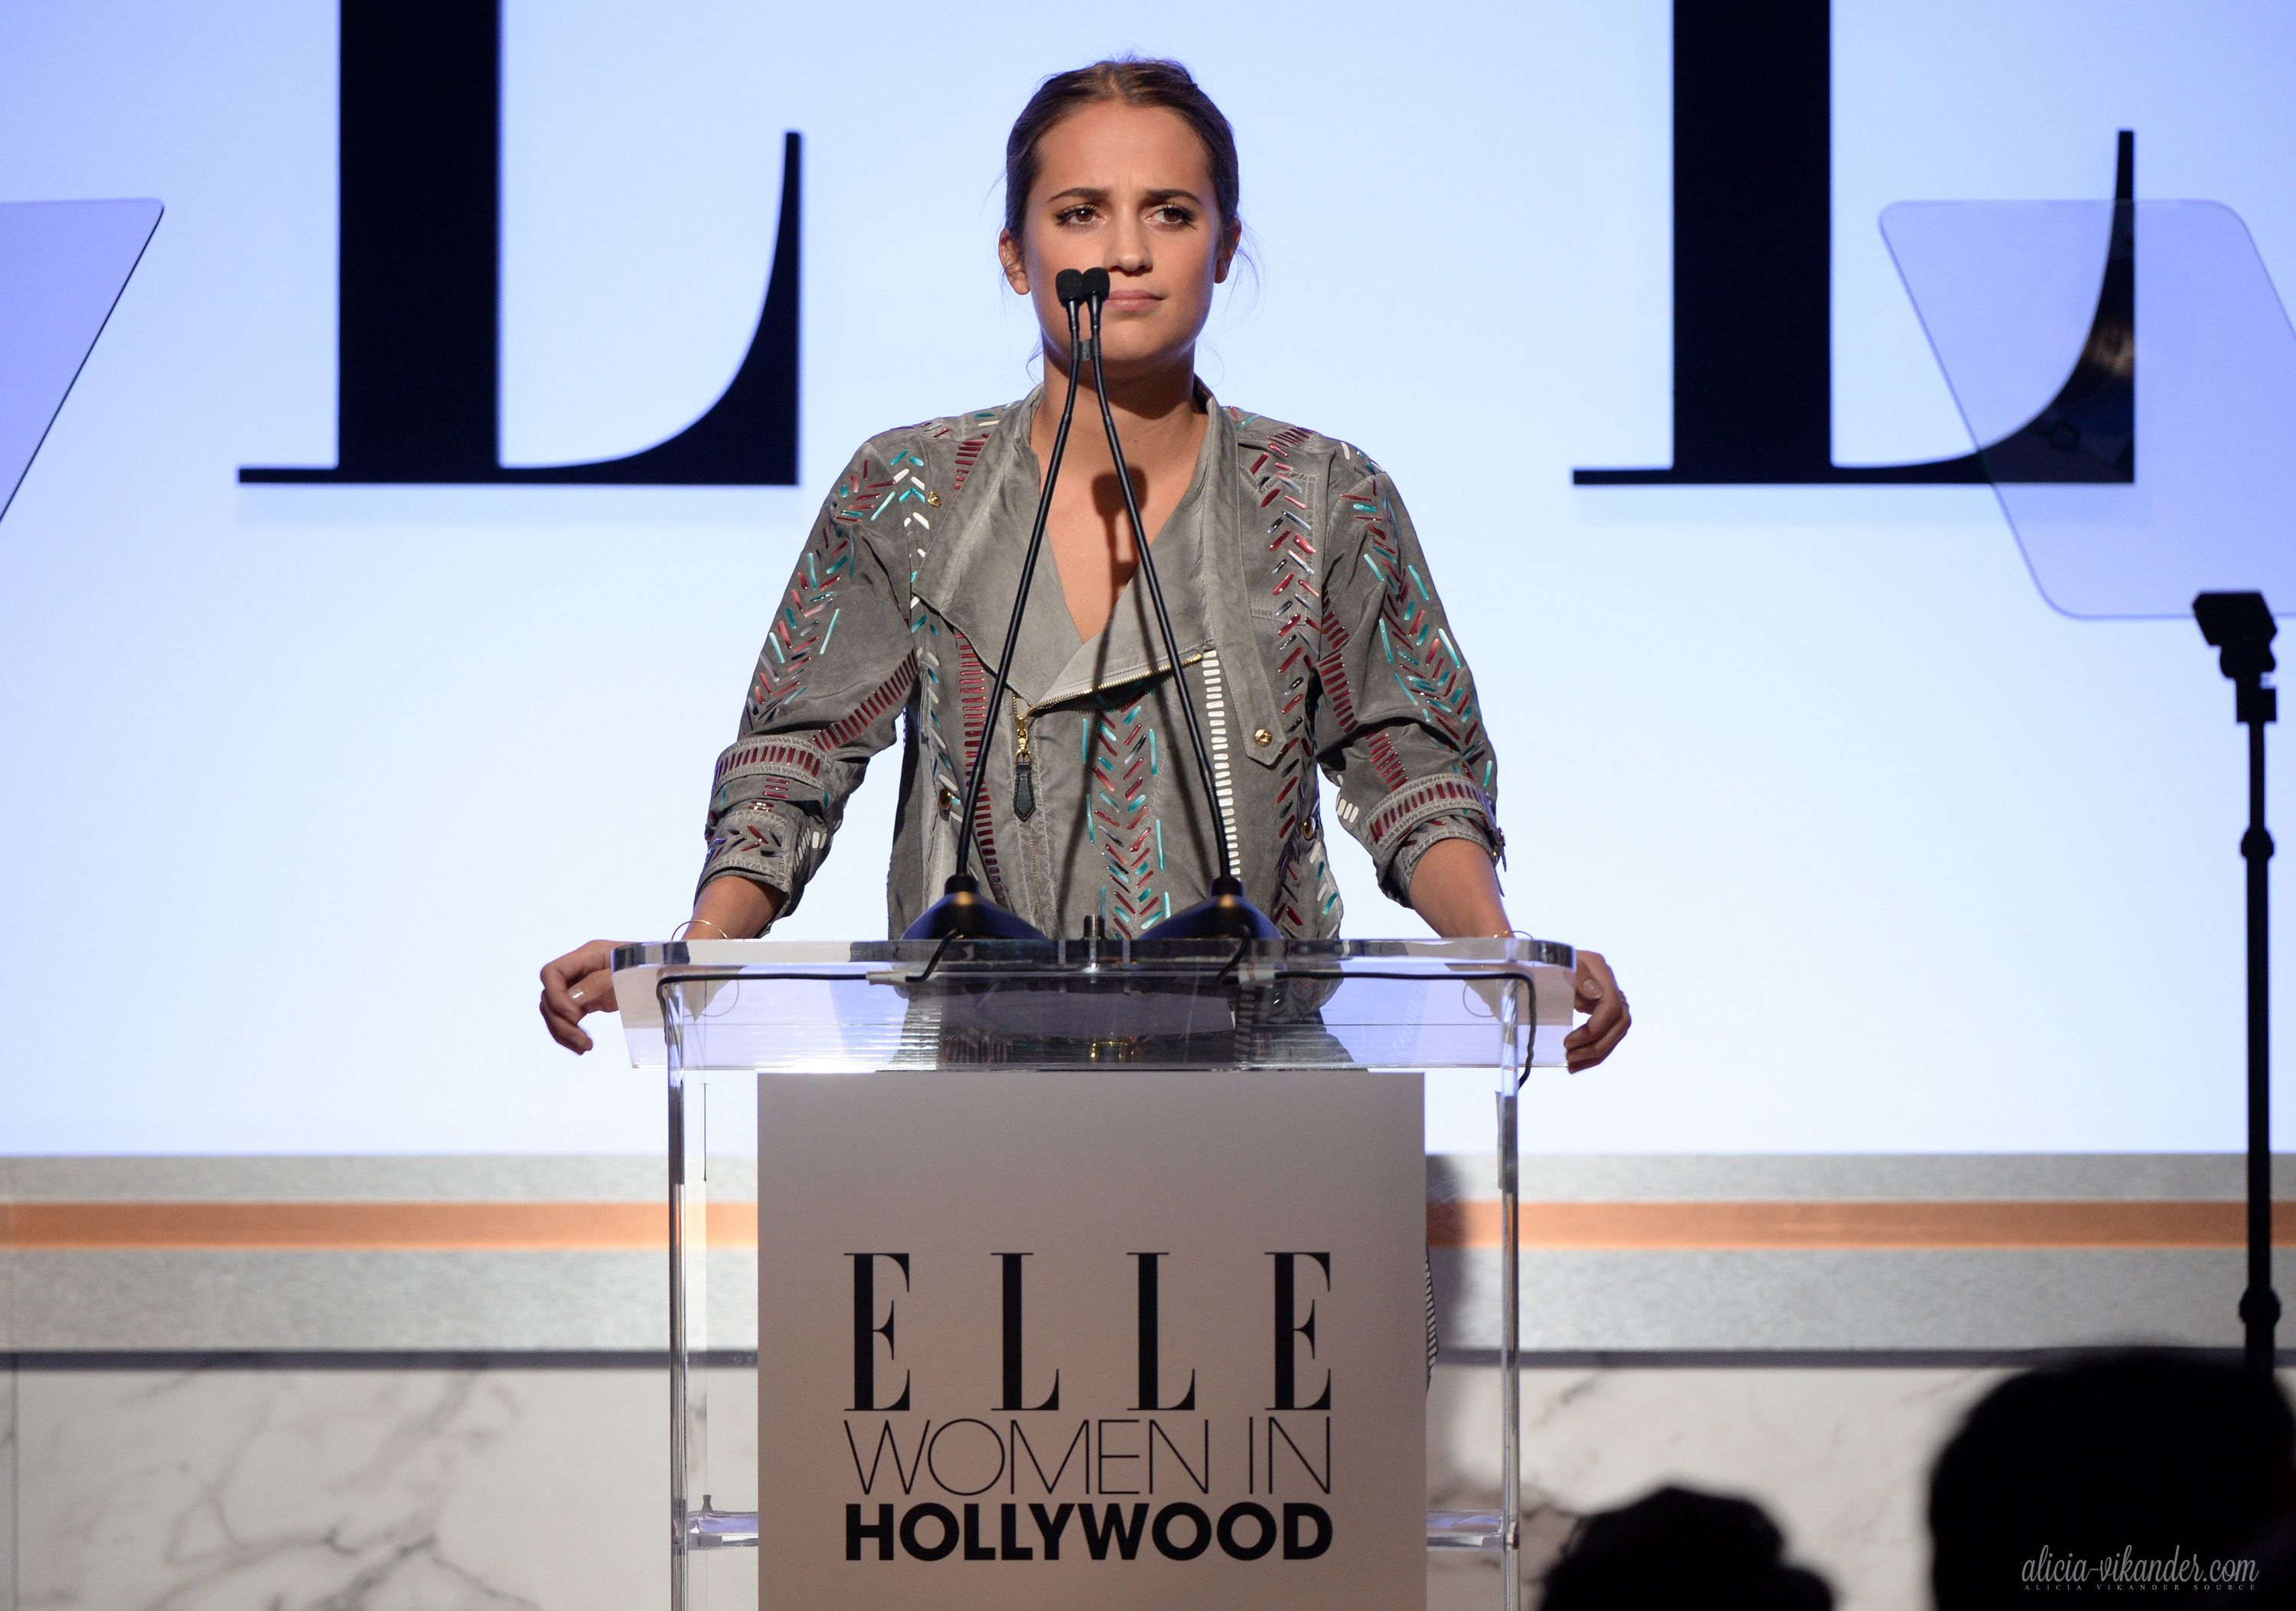 22nd Annual ELLE Women In Hollywood Awards - Show (October 19, 2015)